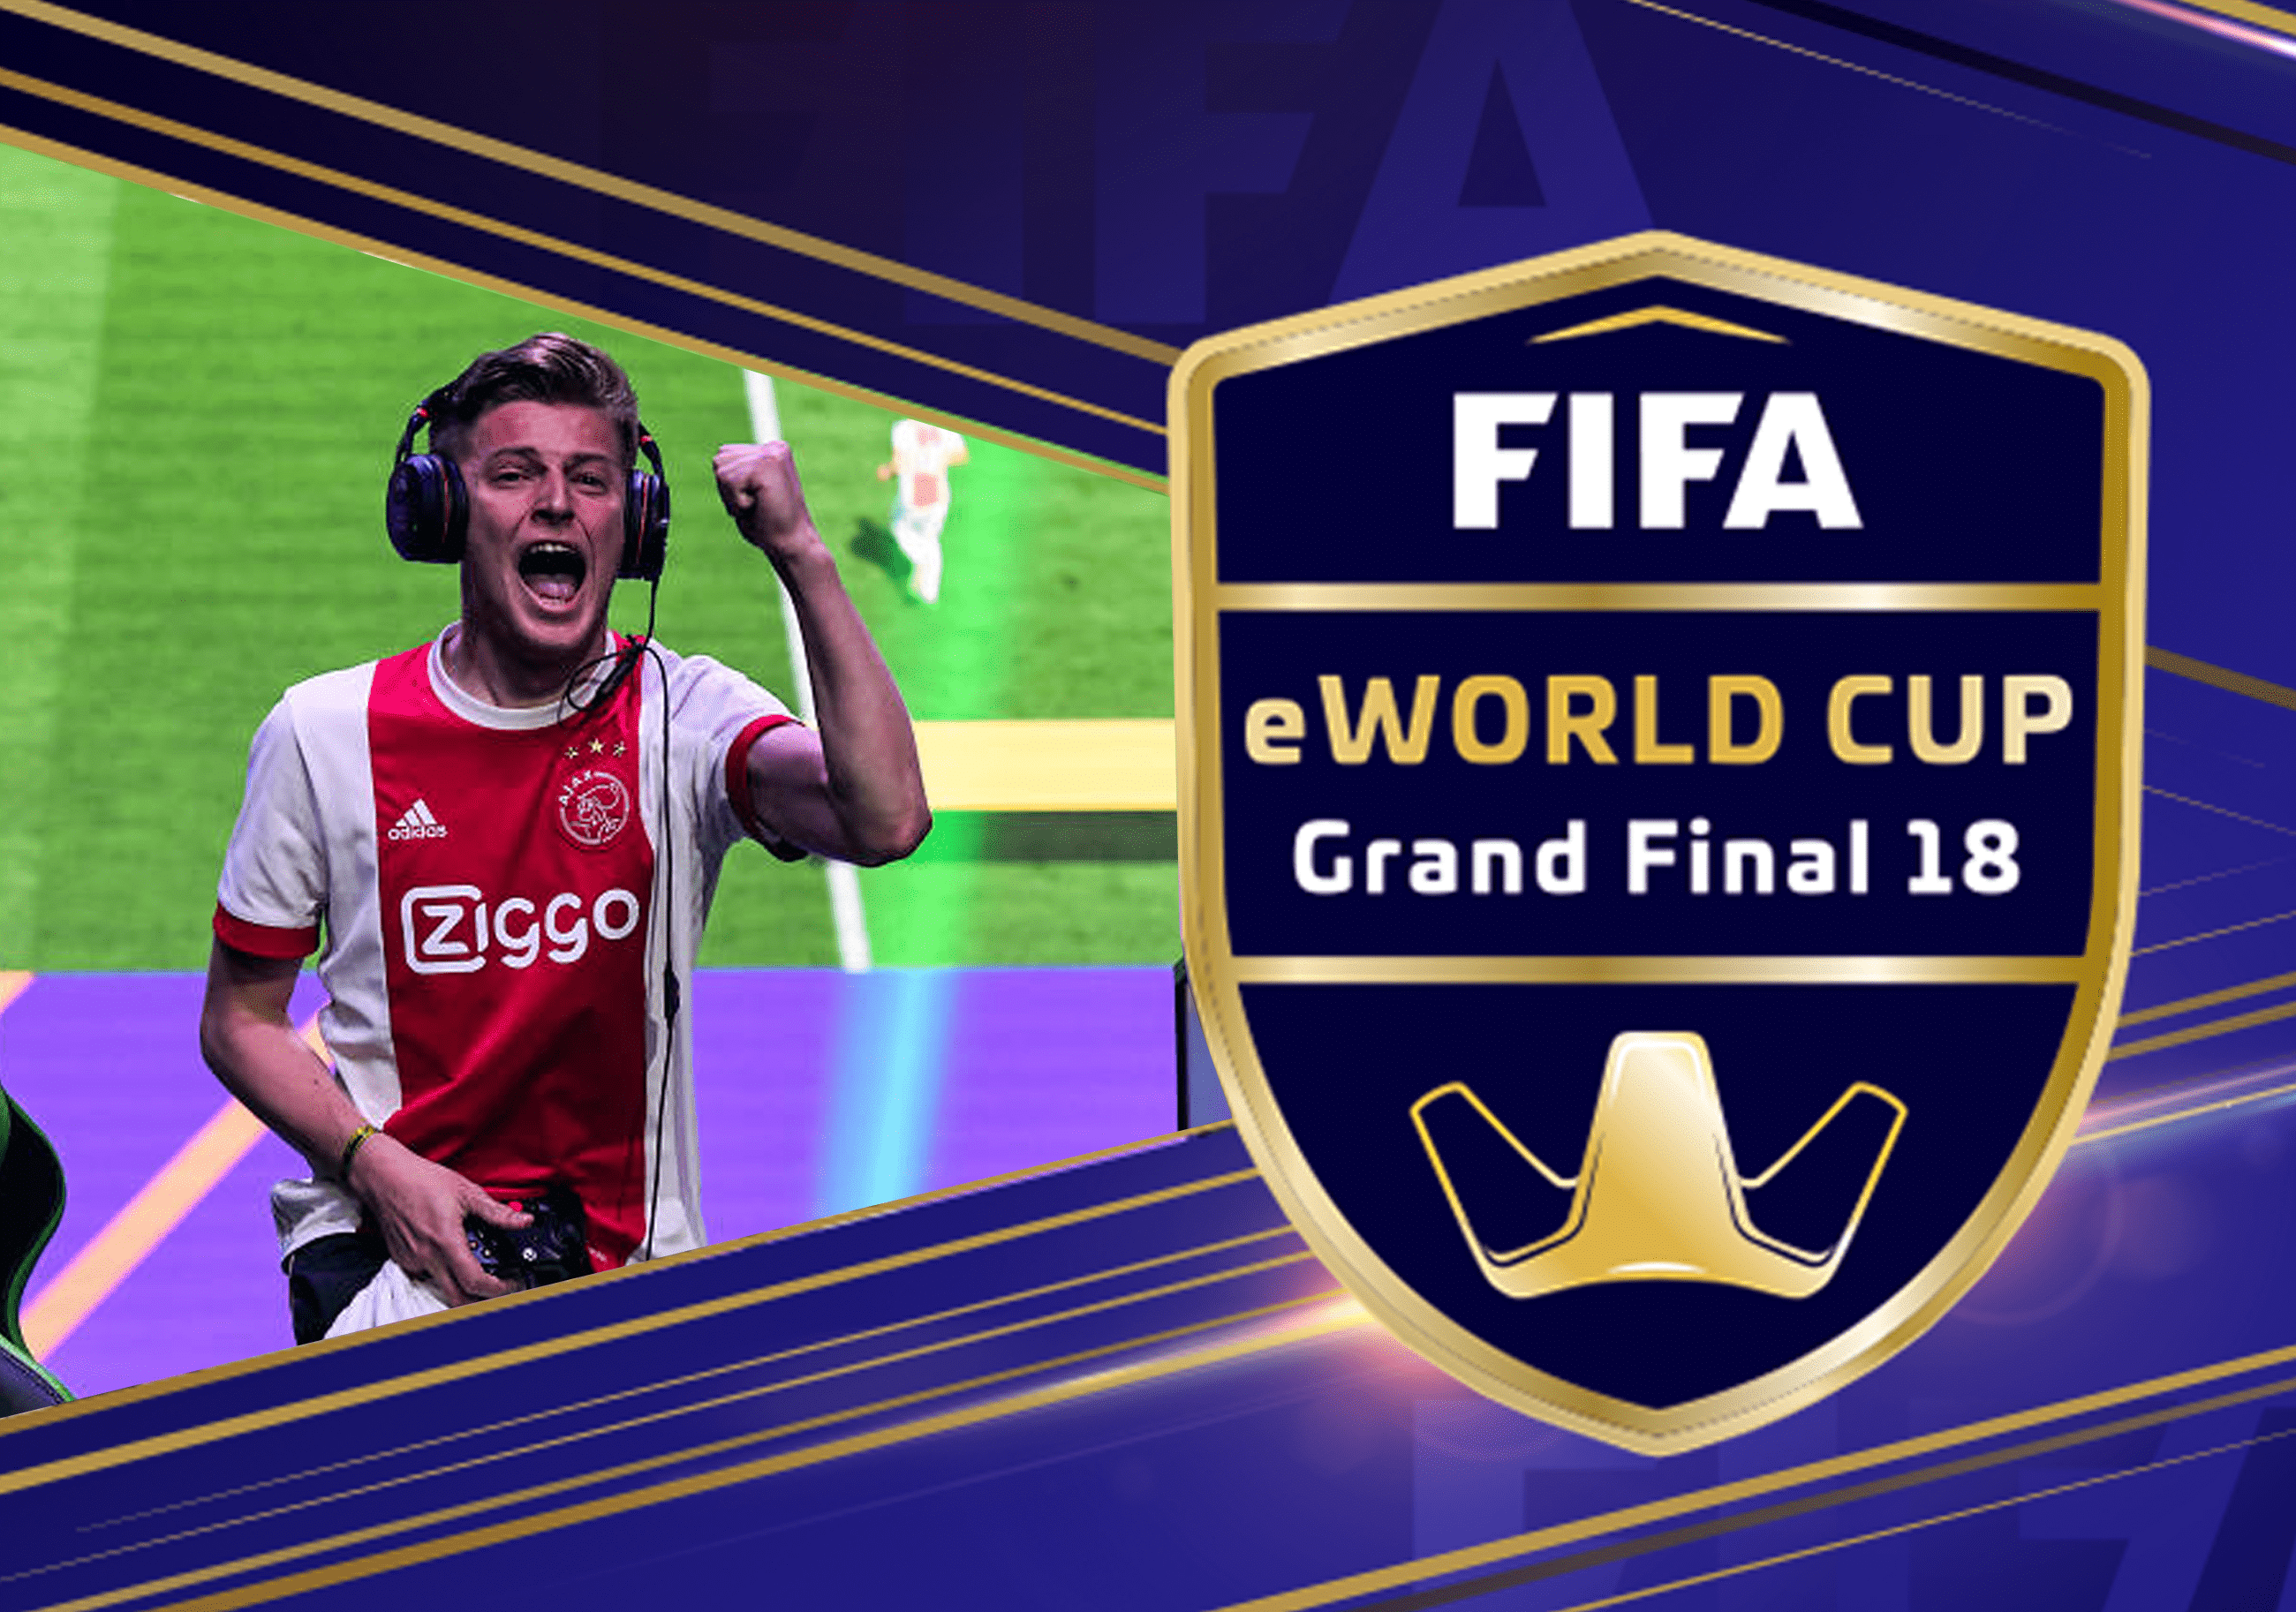 FIFA eWorld Cup 2018 Tournament Info